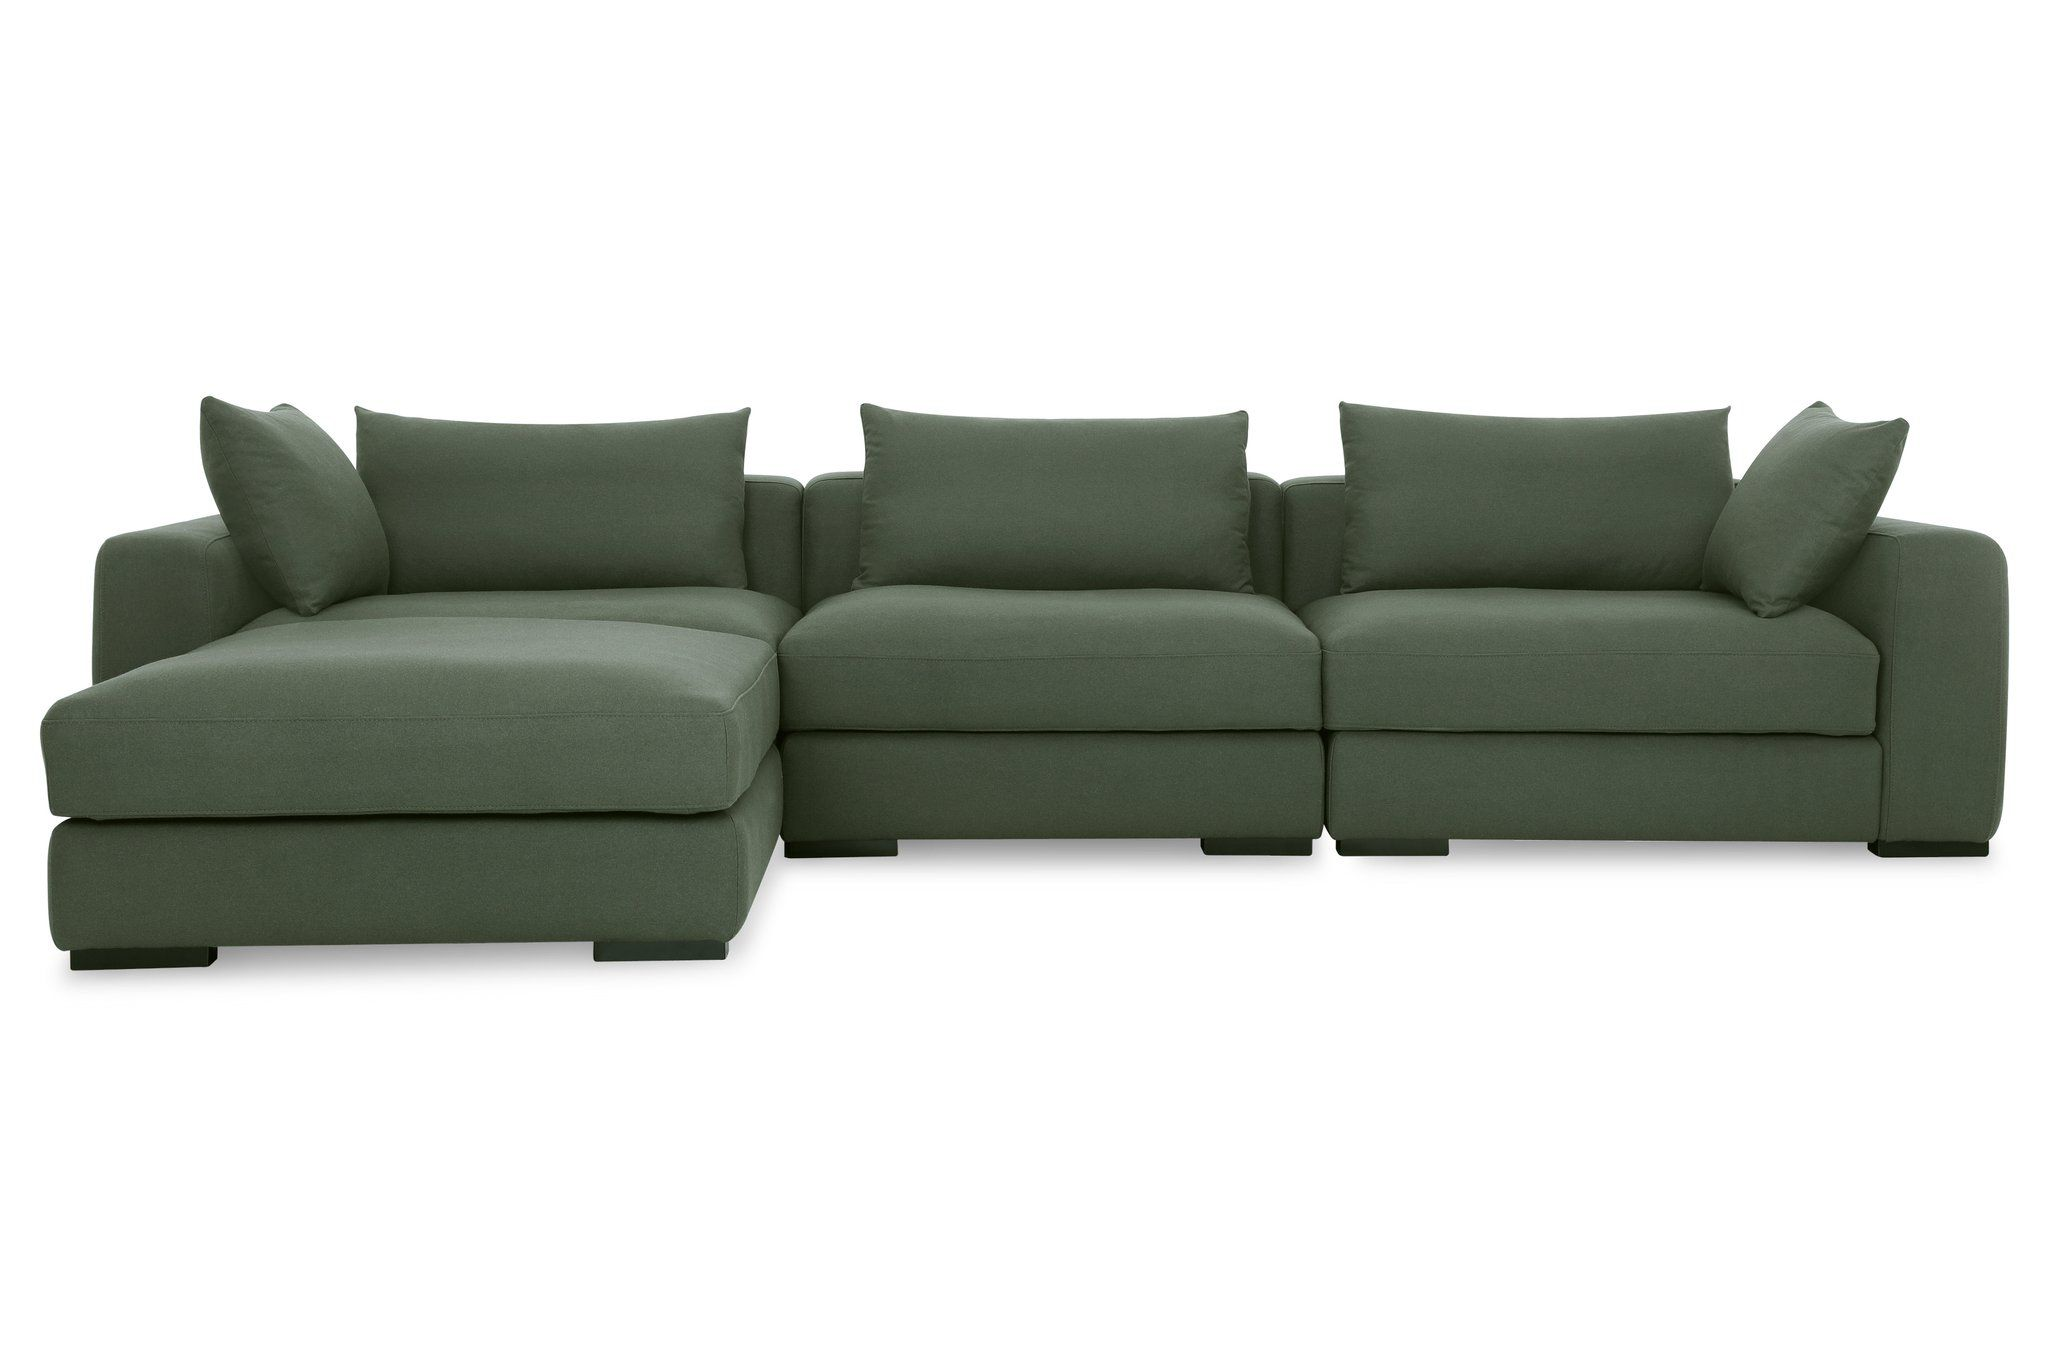 Strange 15 Sectional Sofas To Fit Every Space Inzonedesignstudio Interior Chair Design Inzonedesignstudiocom